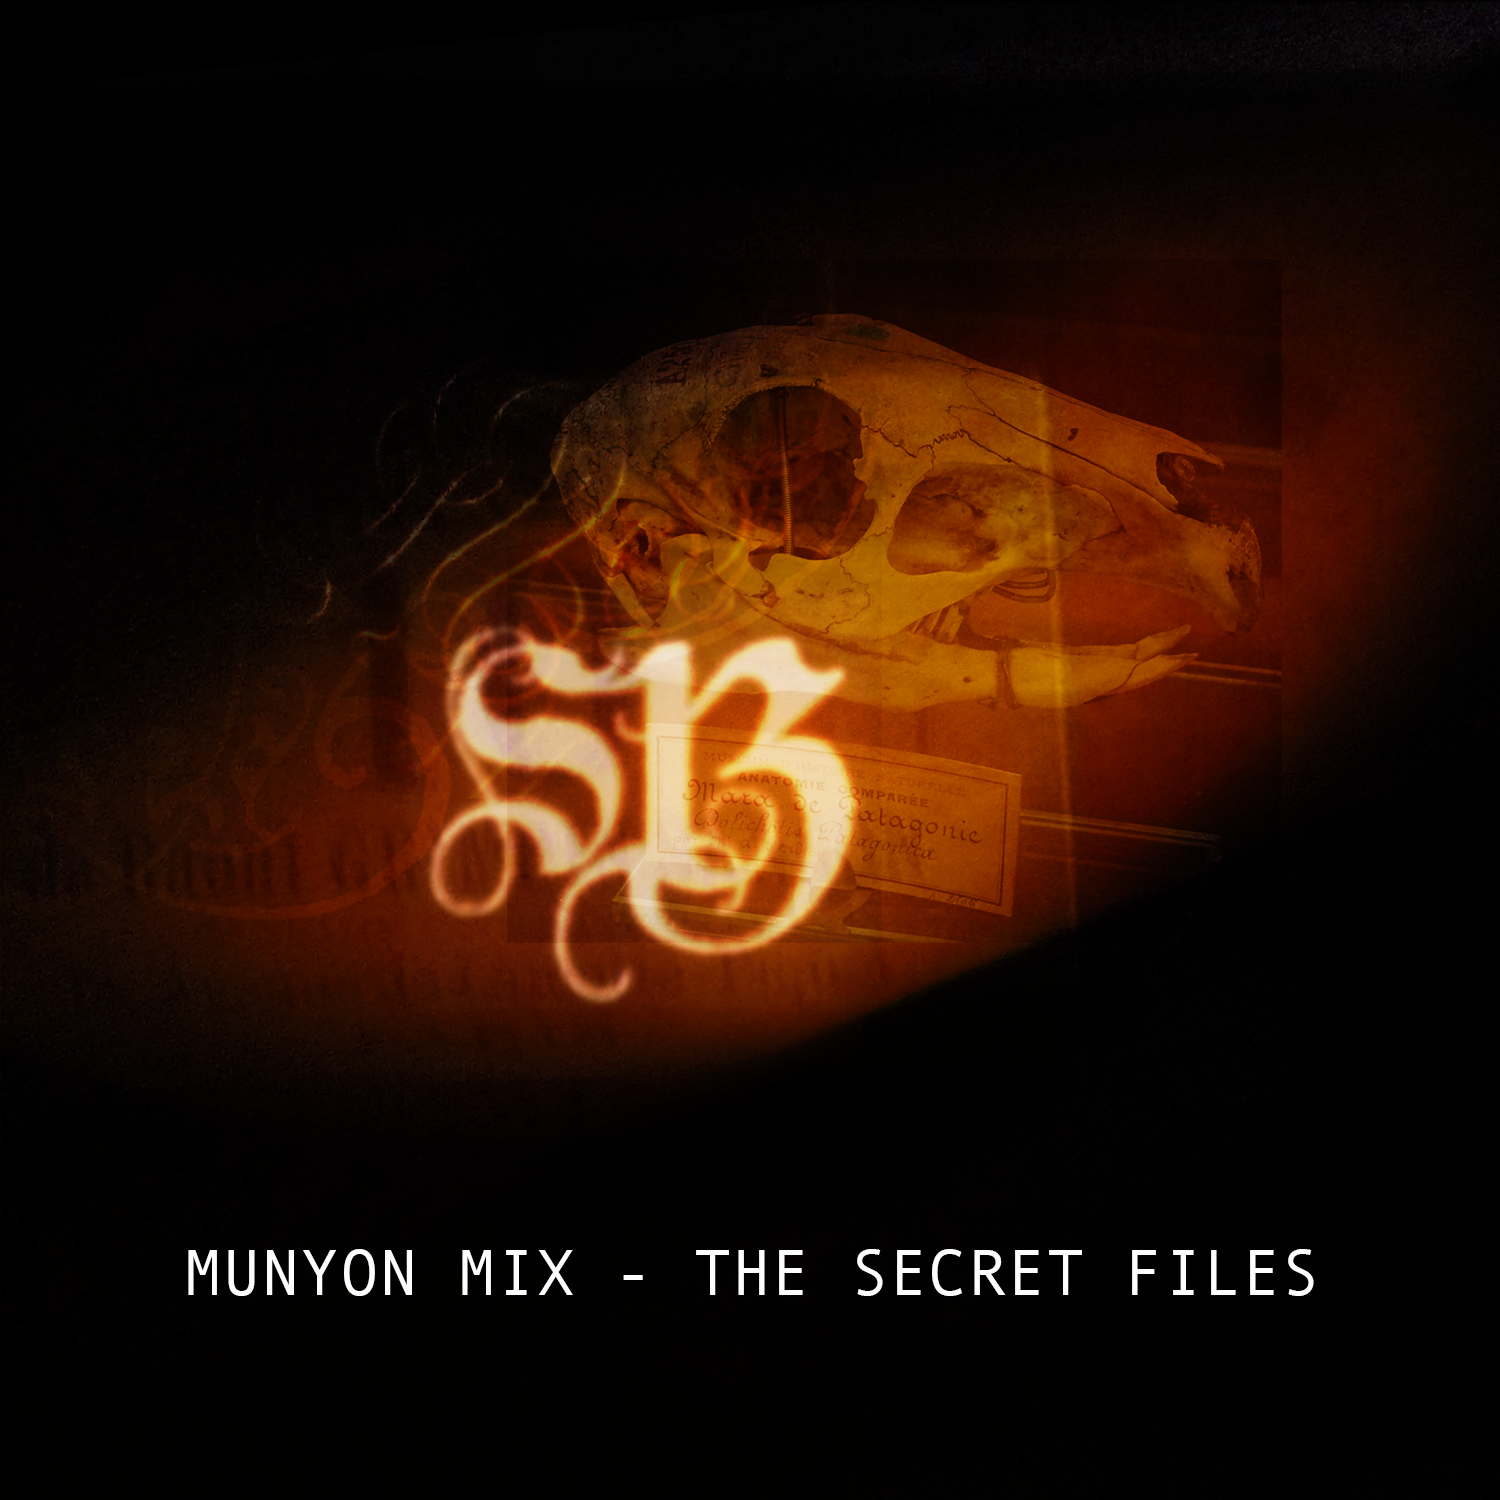 The Munyon Mixes